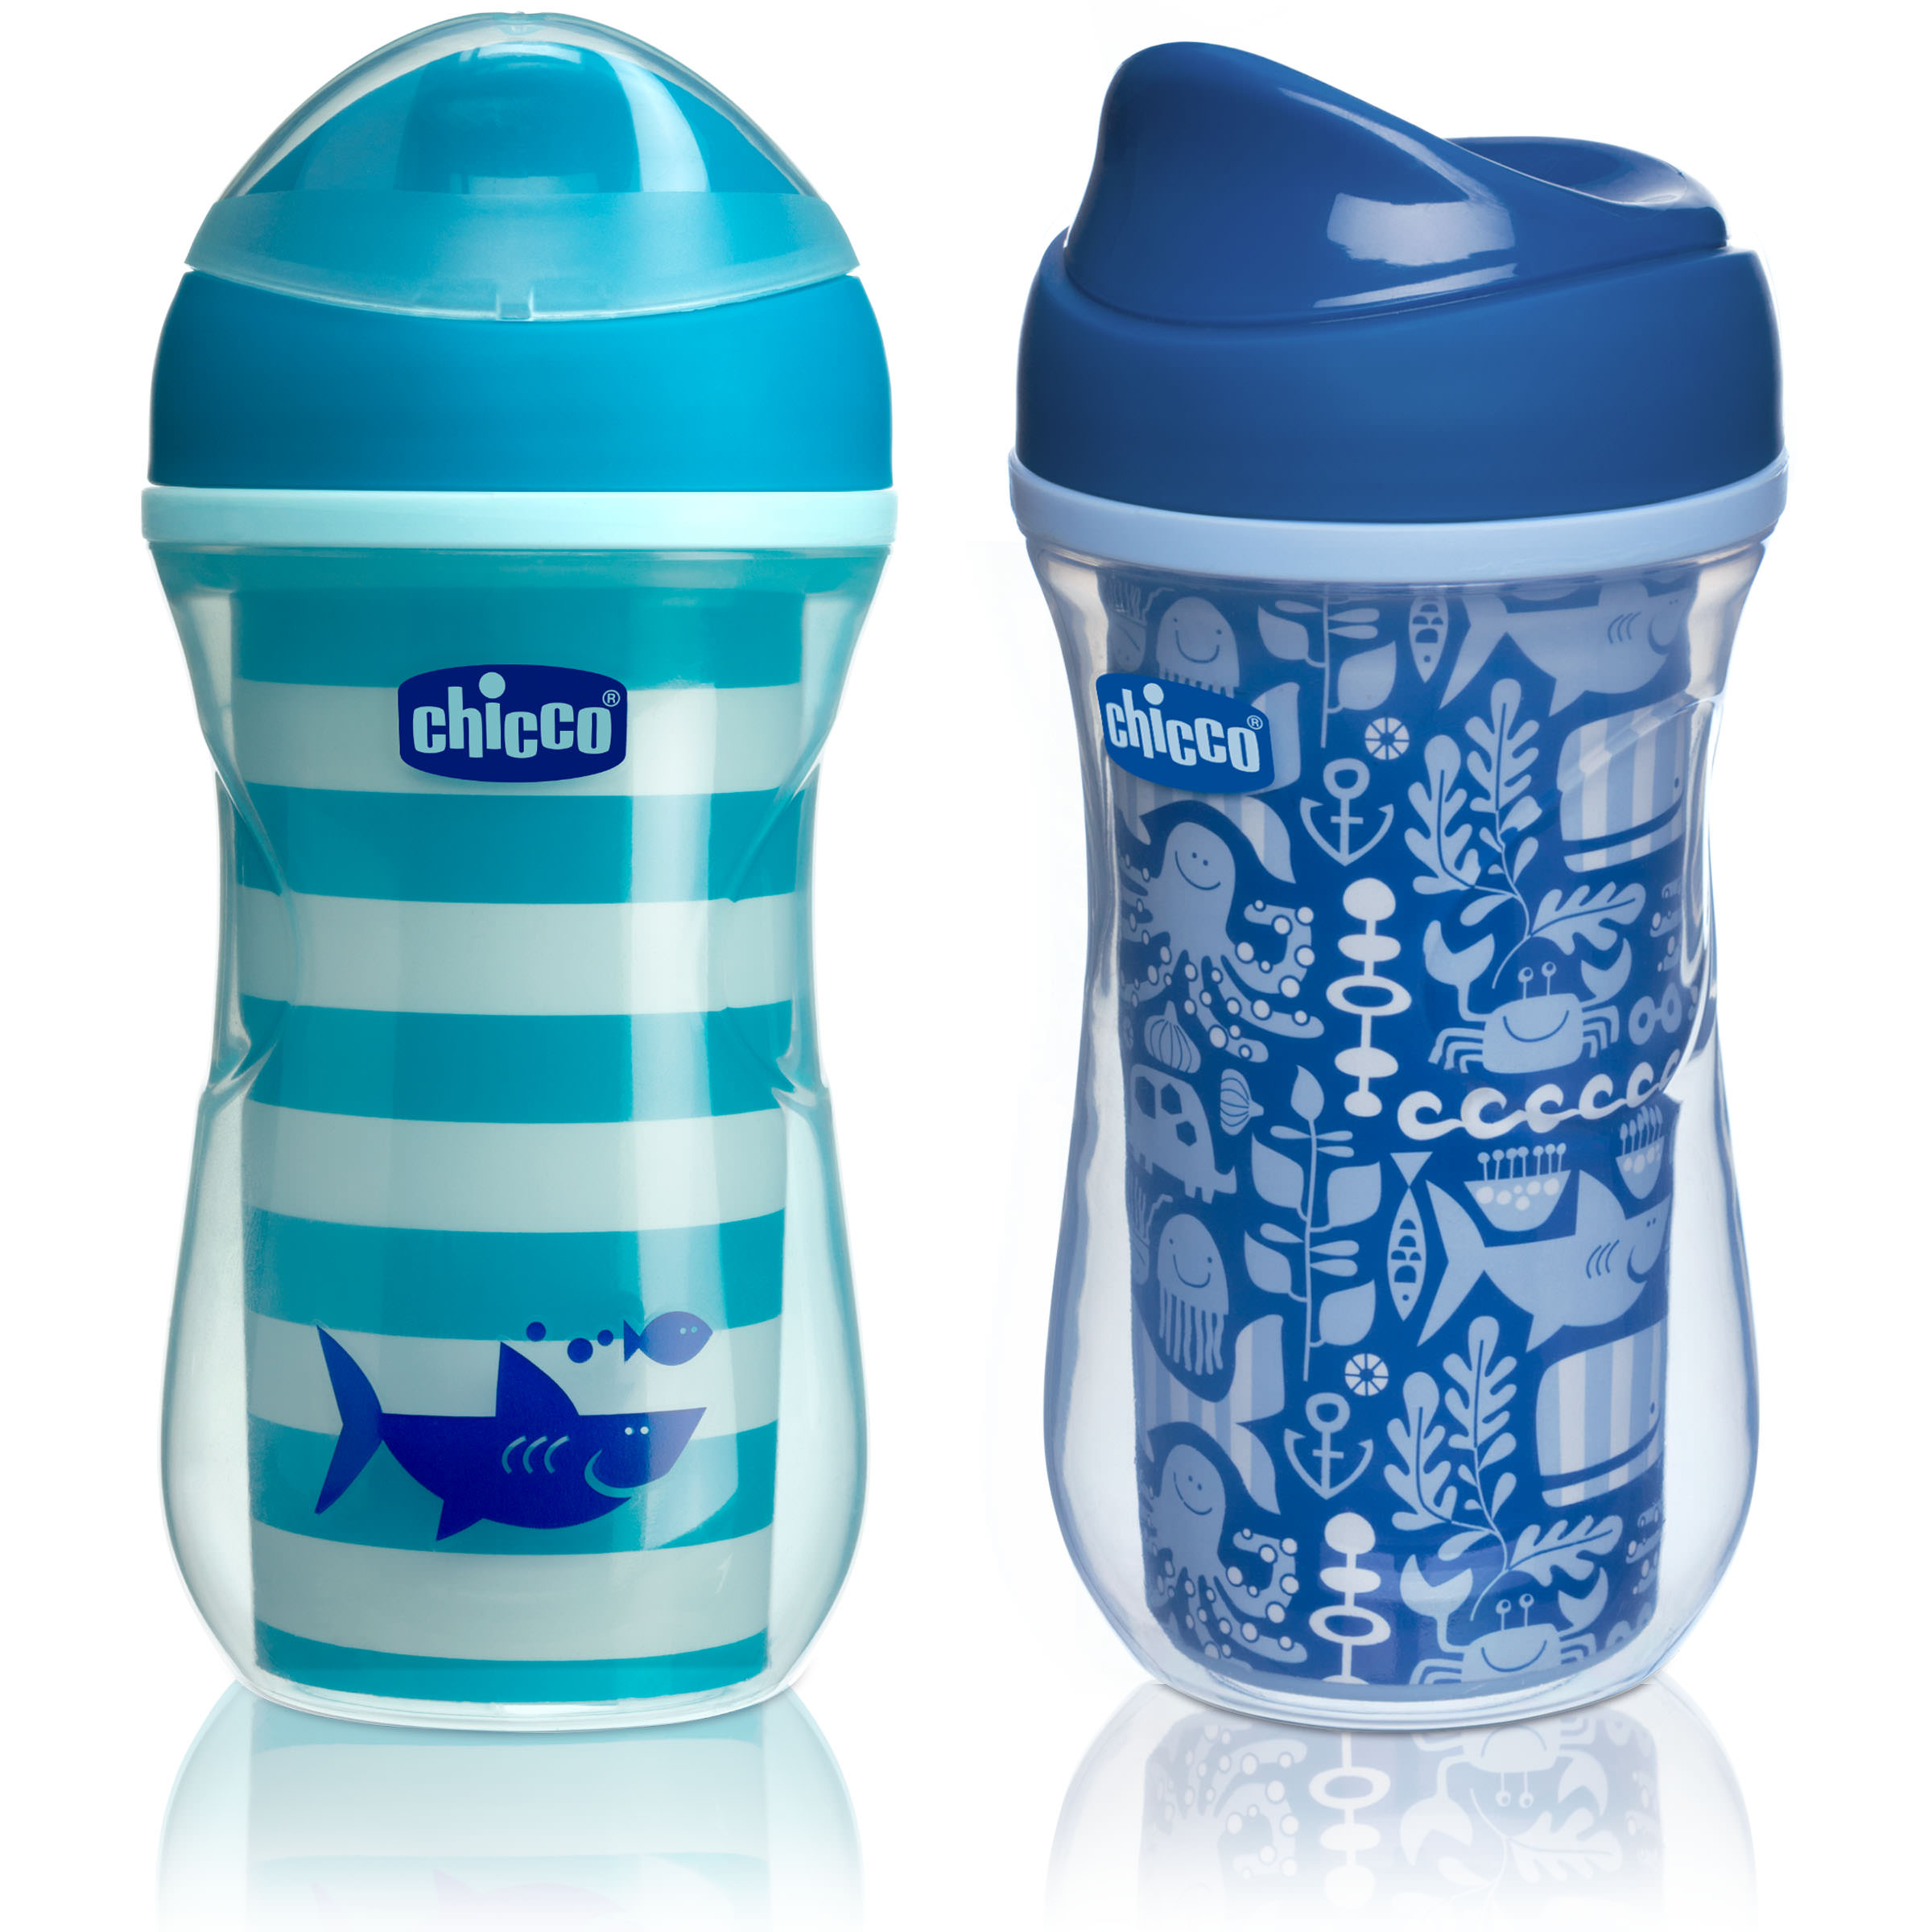 Chicco Insulated No Spill Rim Spout Trainer Sippy Cup 12M+, 9oz Teal Green 2-Pack by Chicco